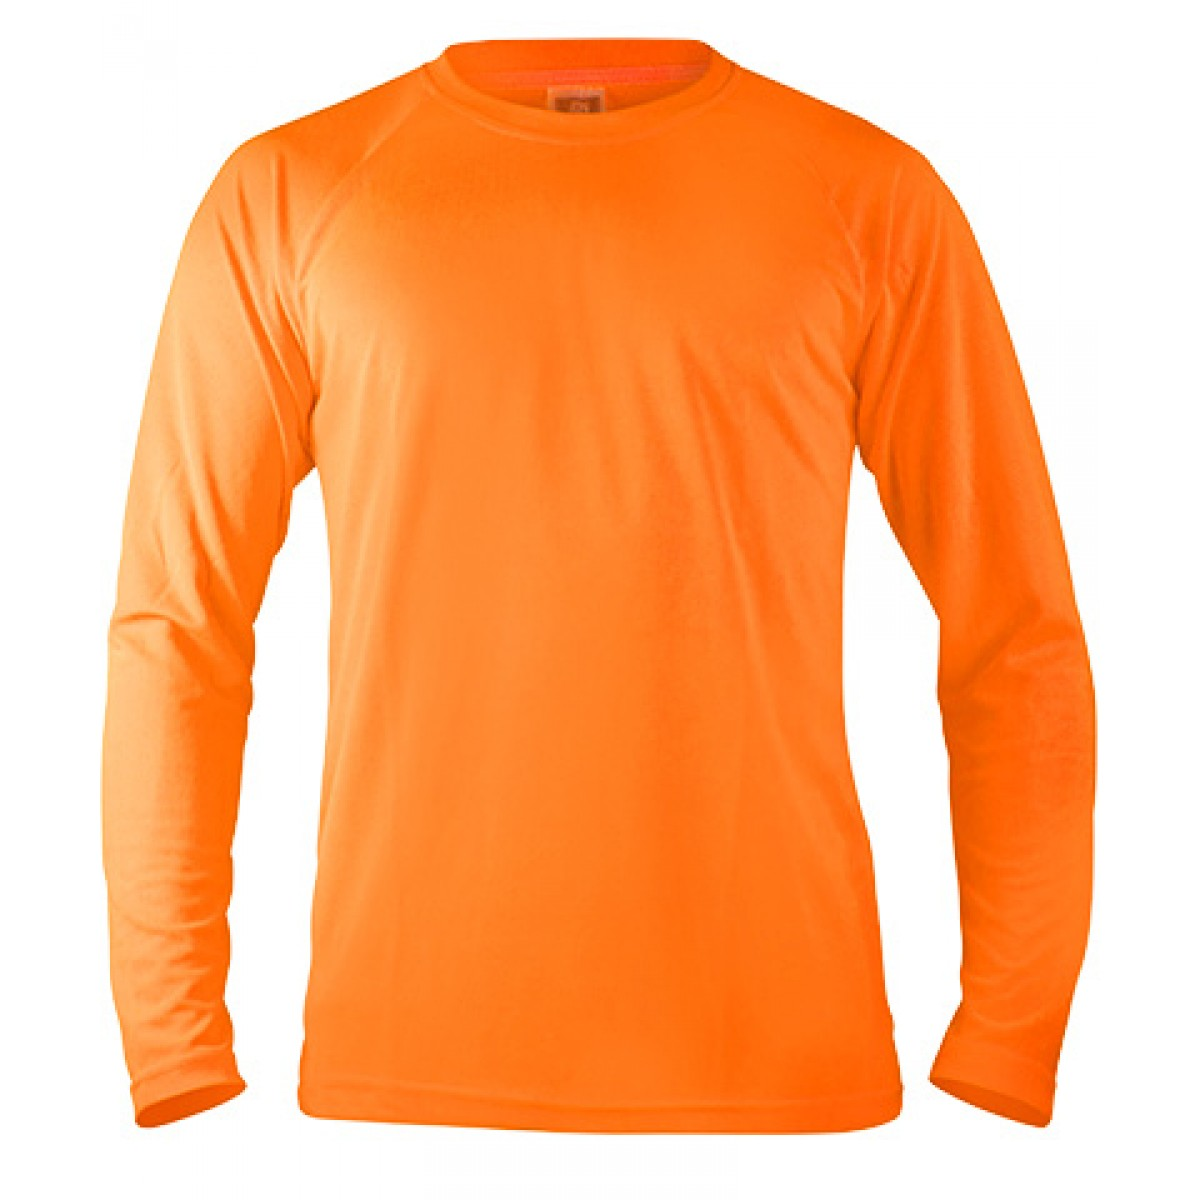 Long Sleeve Performance -Safety Orange-XL